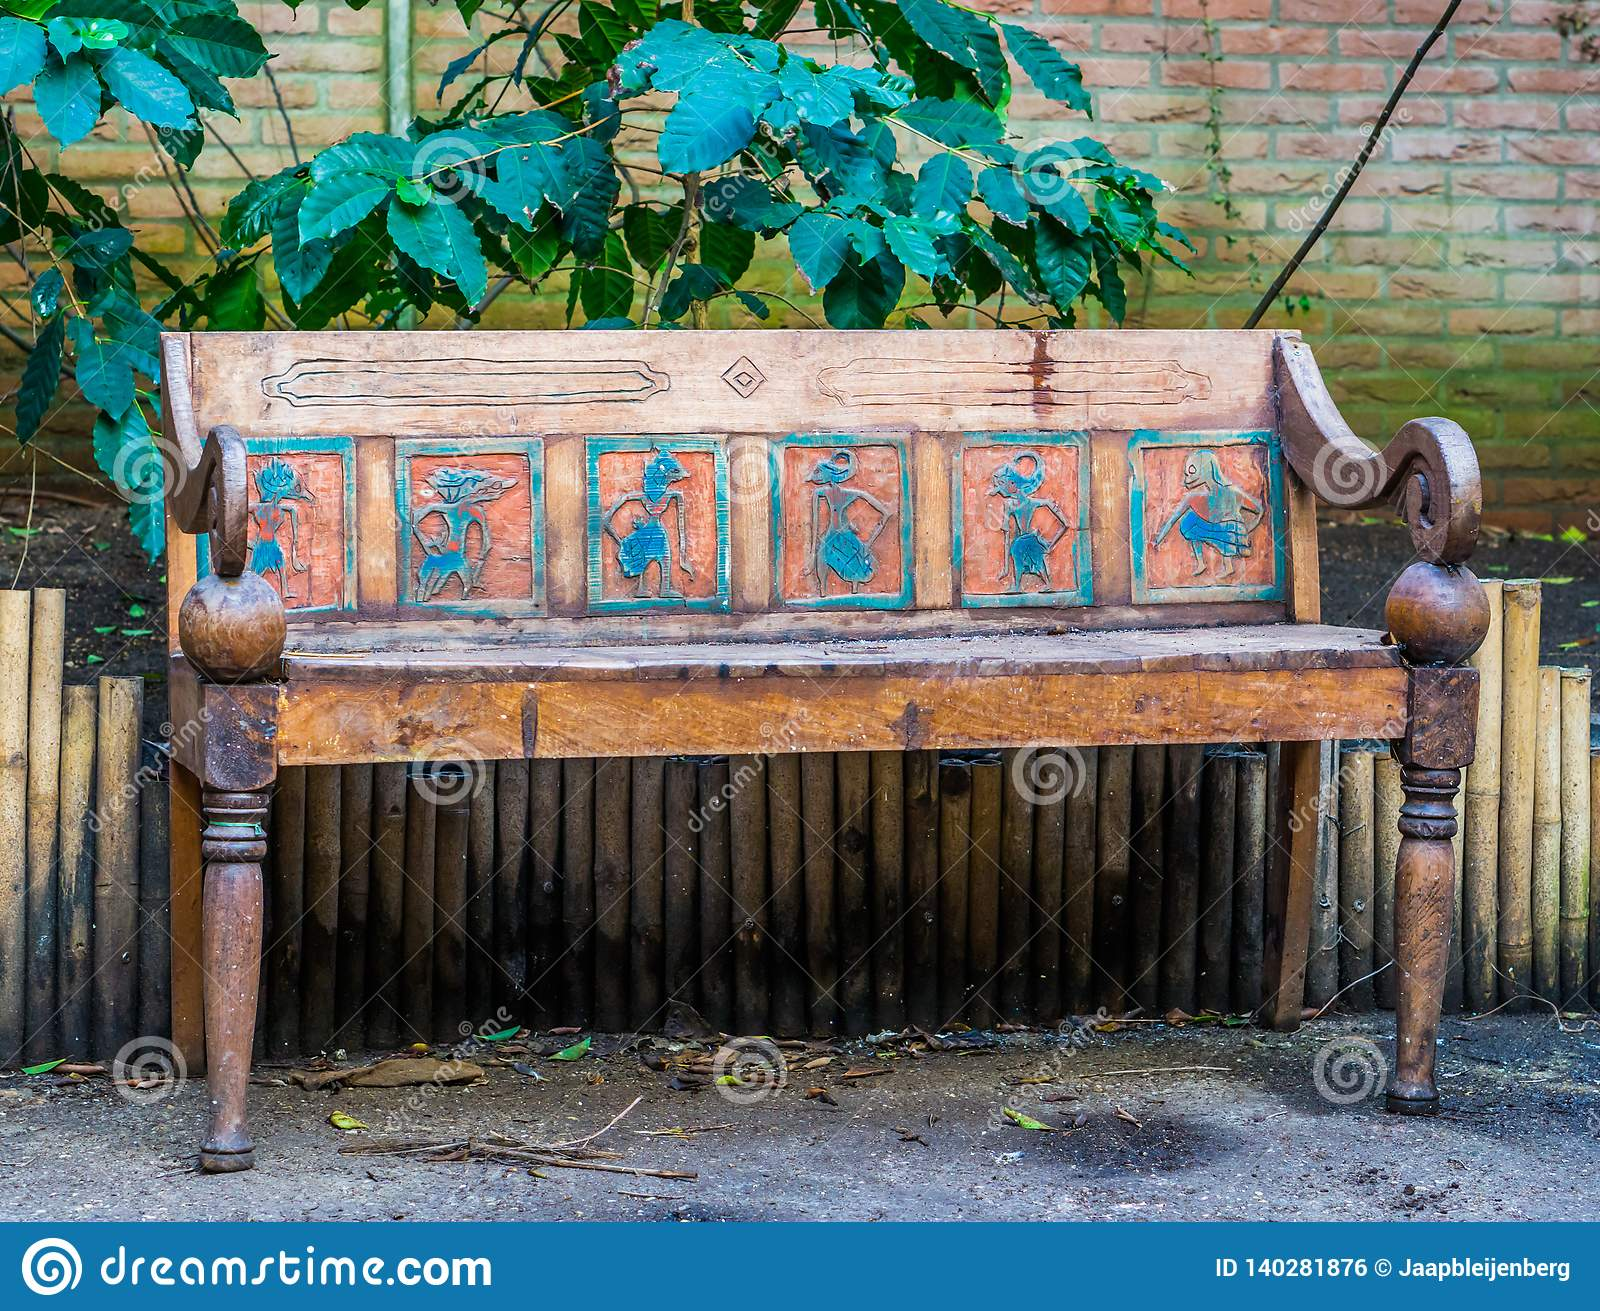 Astonishing Beautiful Vintage Bench In Egyptian Style Seat Decorated Pdpeps Interior Chair Design Pdpepsorg